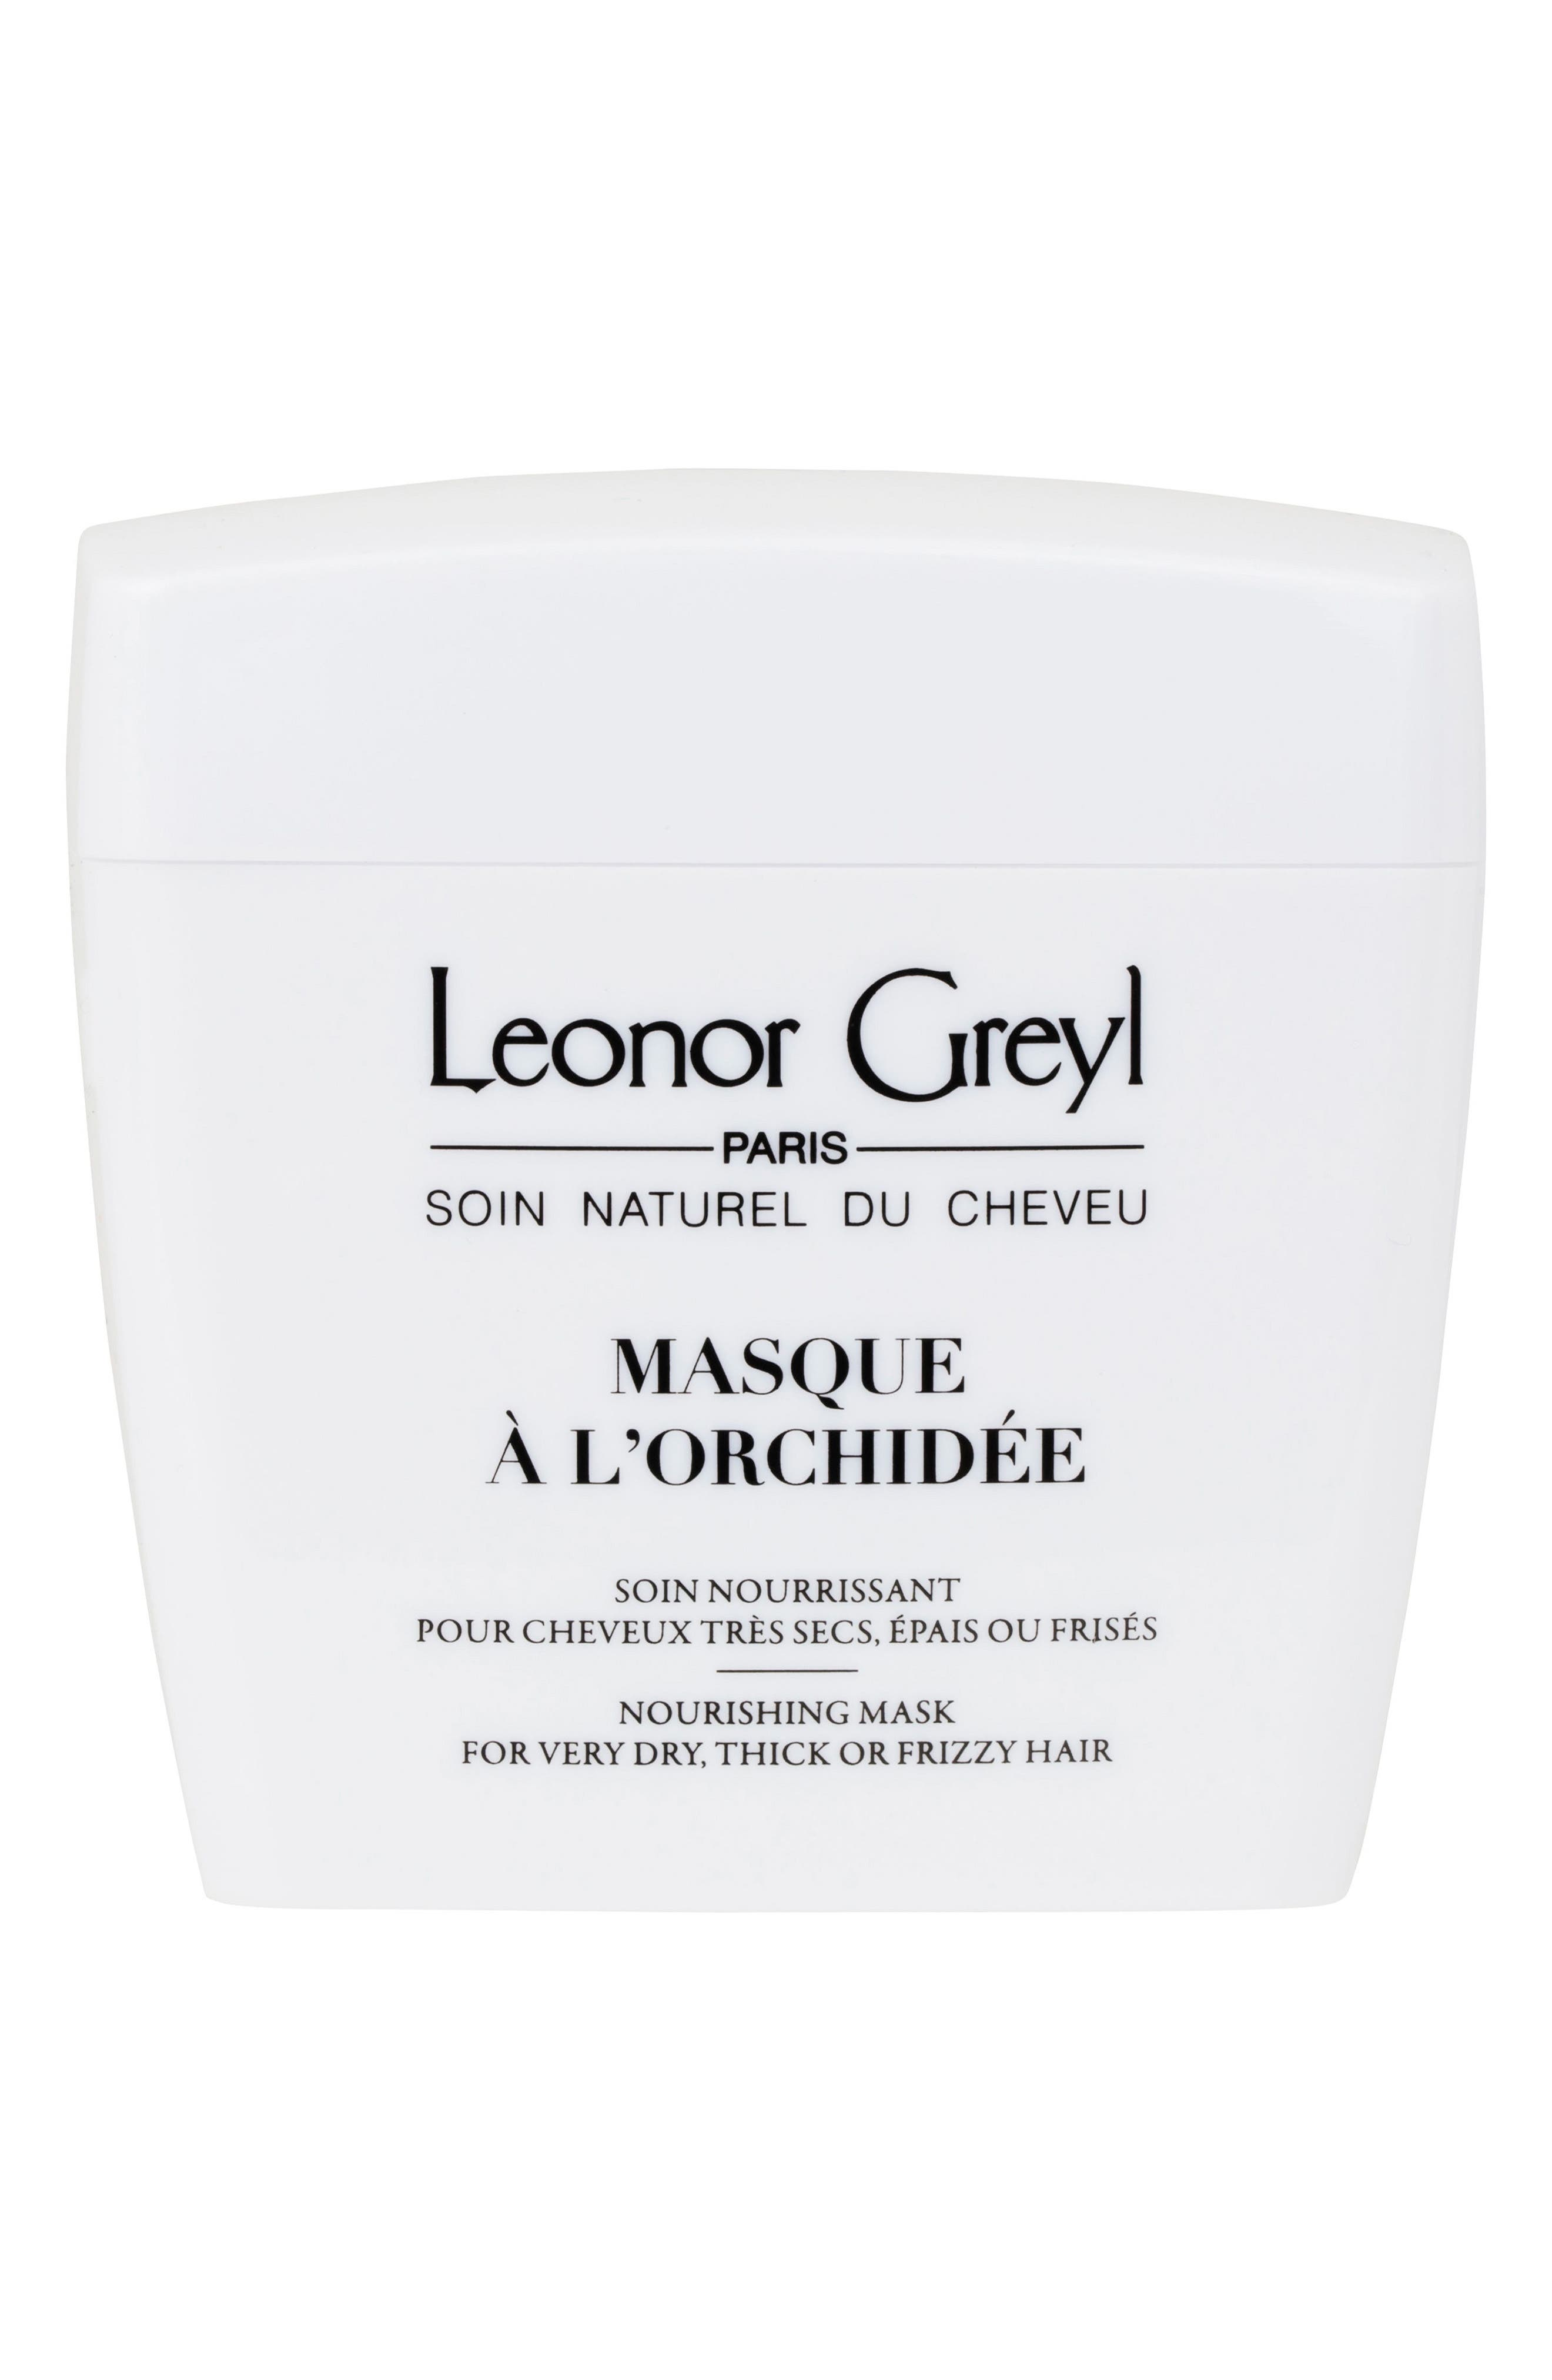 LEONOR GREYL Masque A L'Orchidee (Nourishing Mask For Very Dry, Thick, Or Frizzy Hair), 7.0 Oz./ 200 Ml